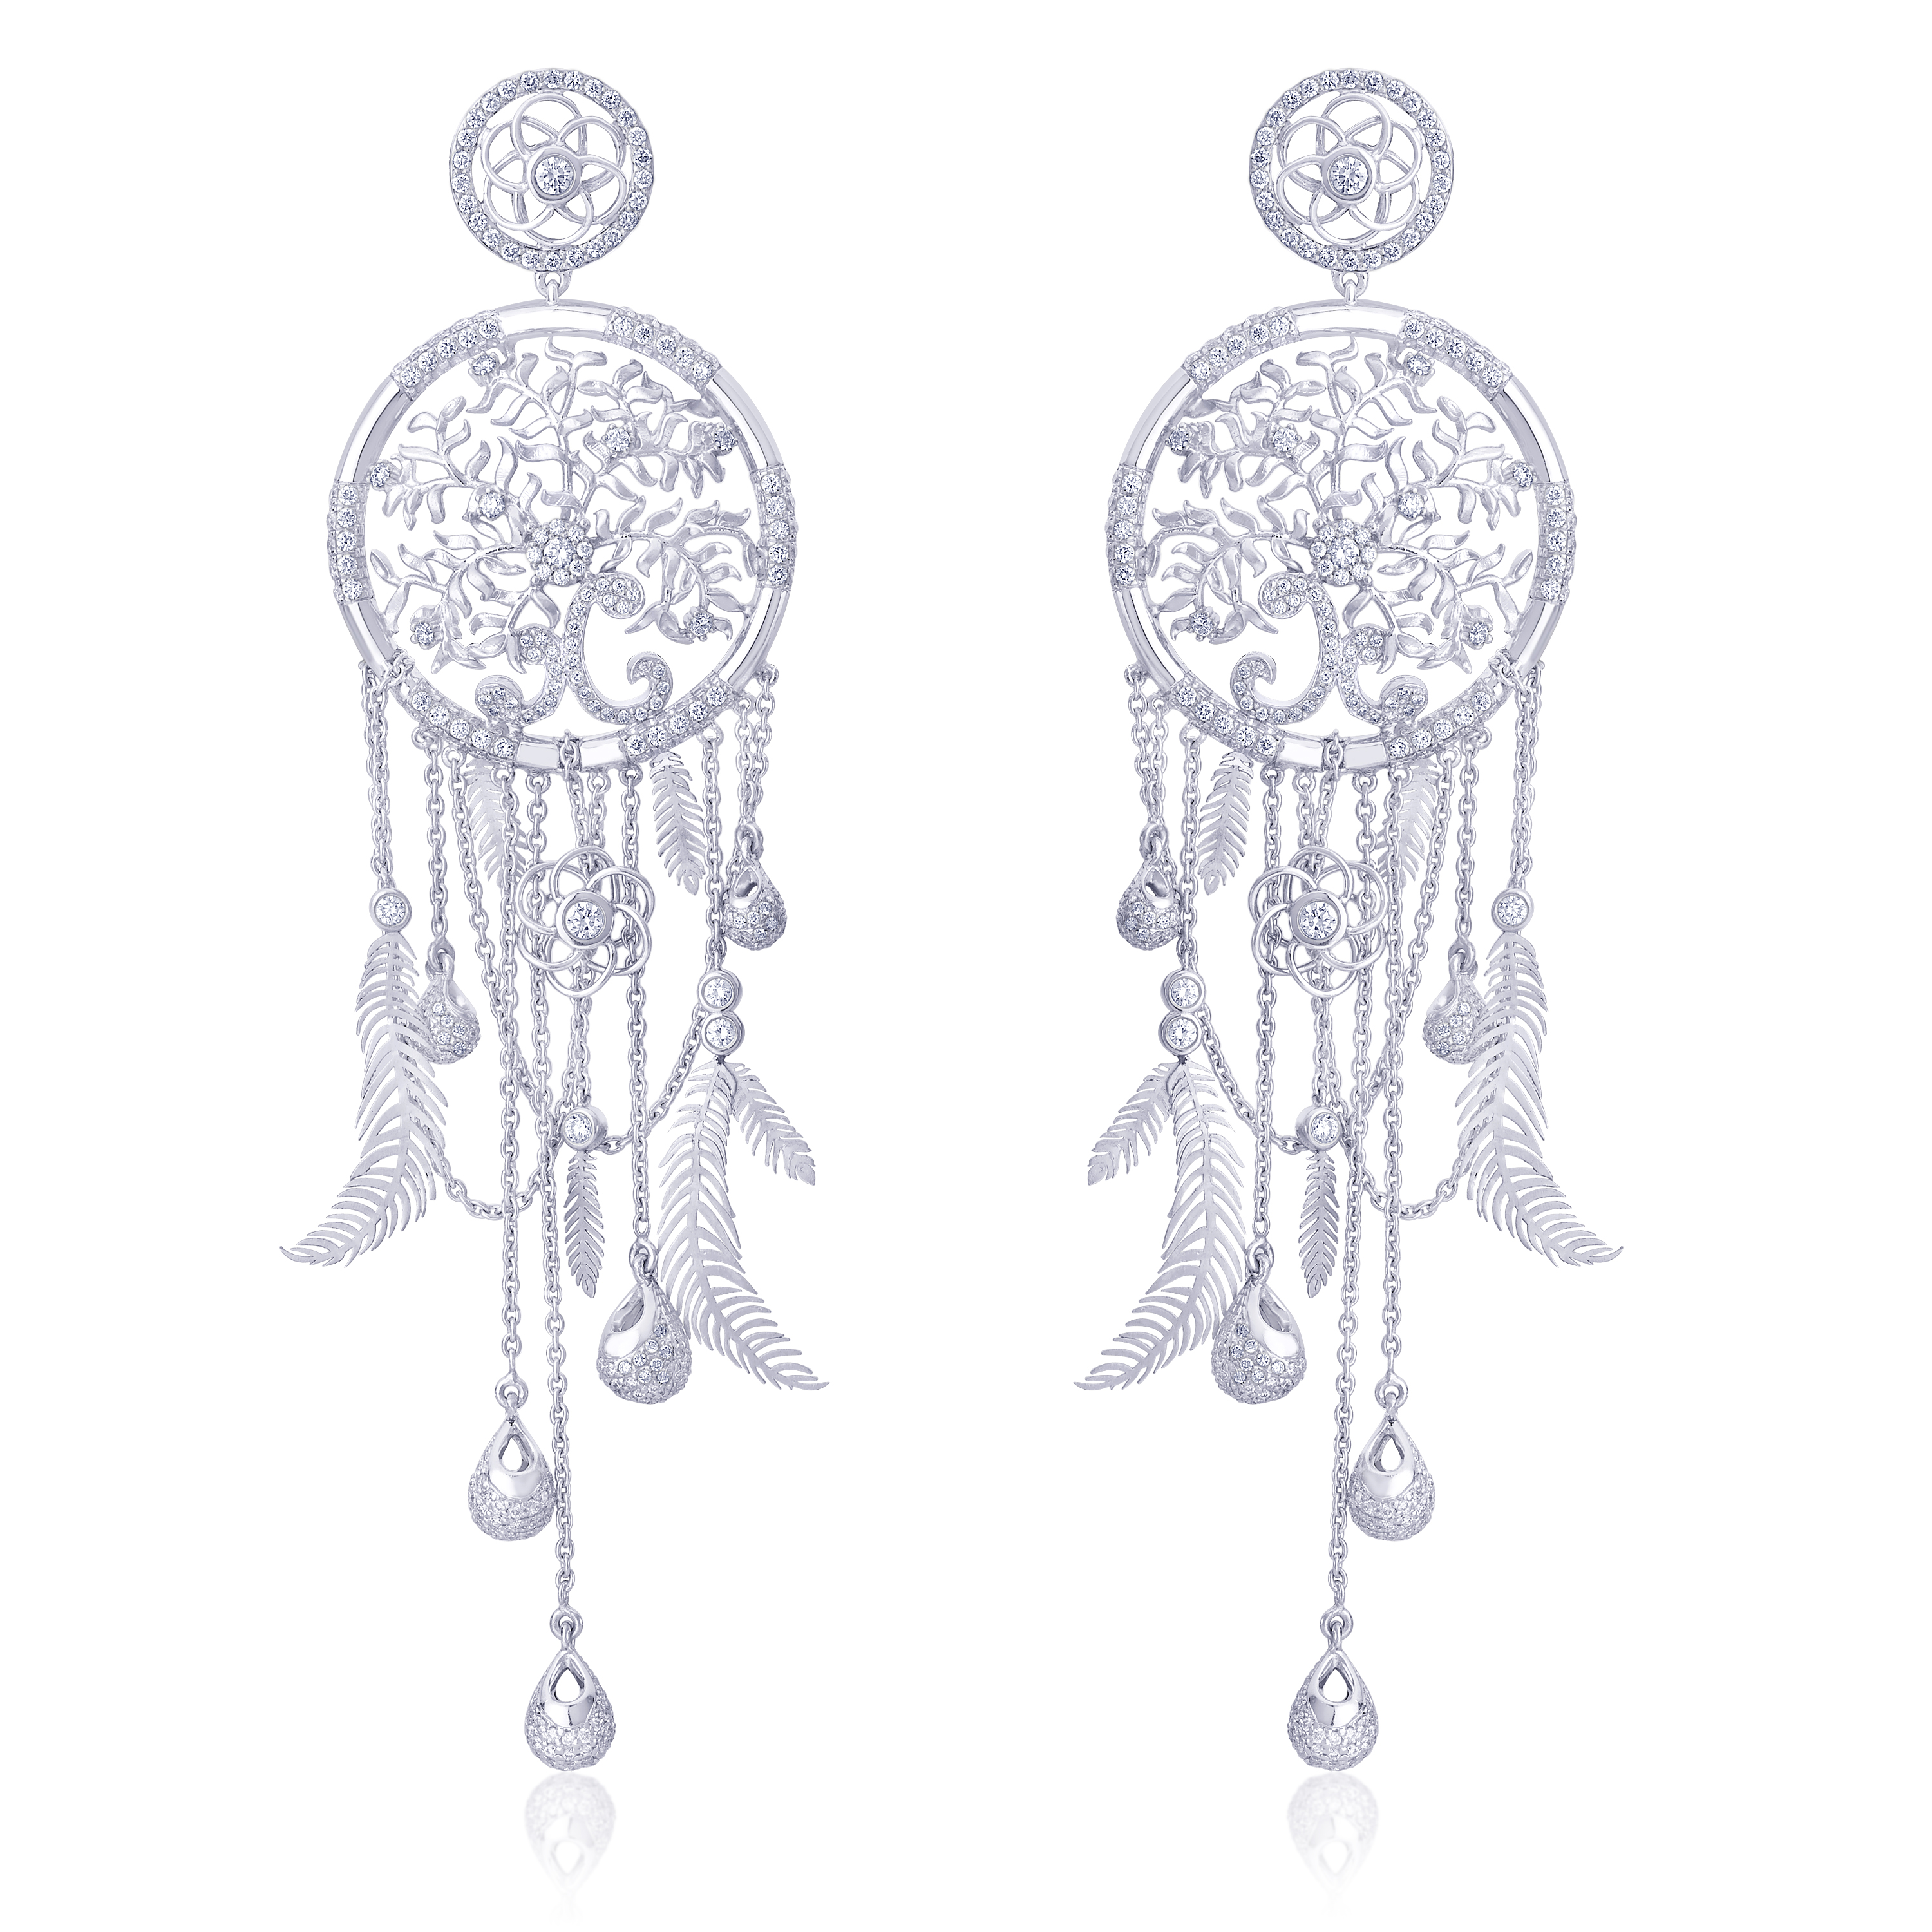 Dream Catcher Earrings crafted in Eternal platinum by ORRA   (2) (1)